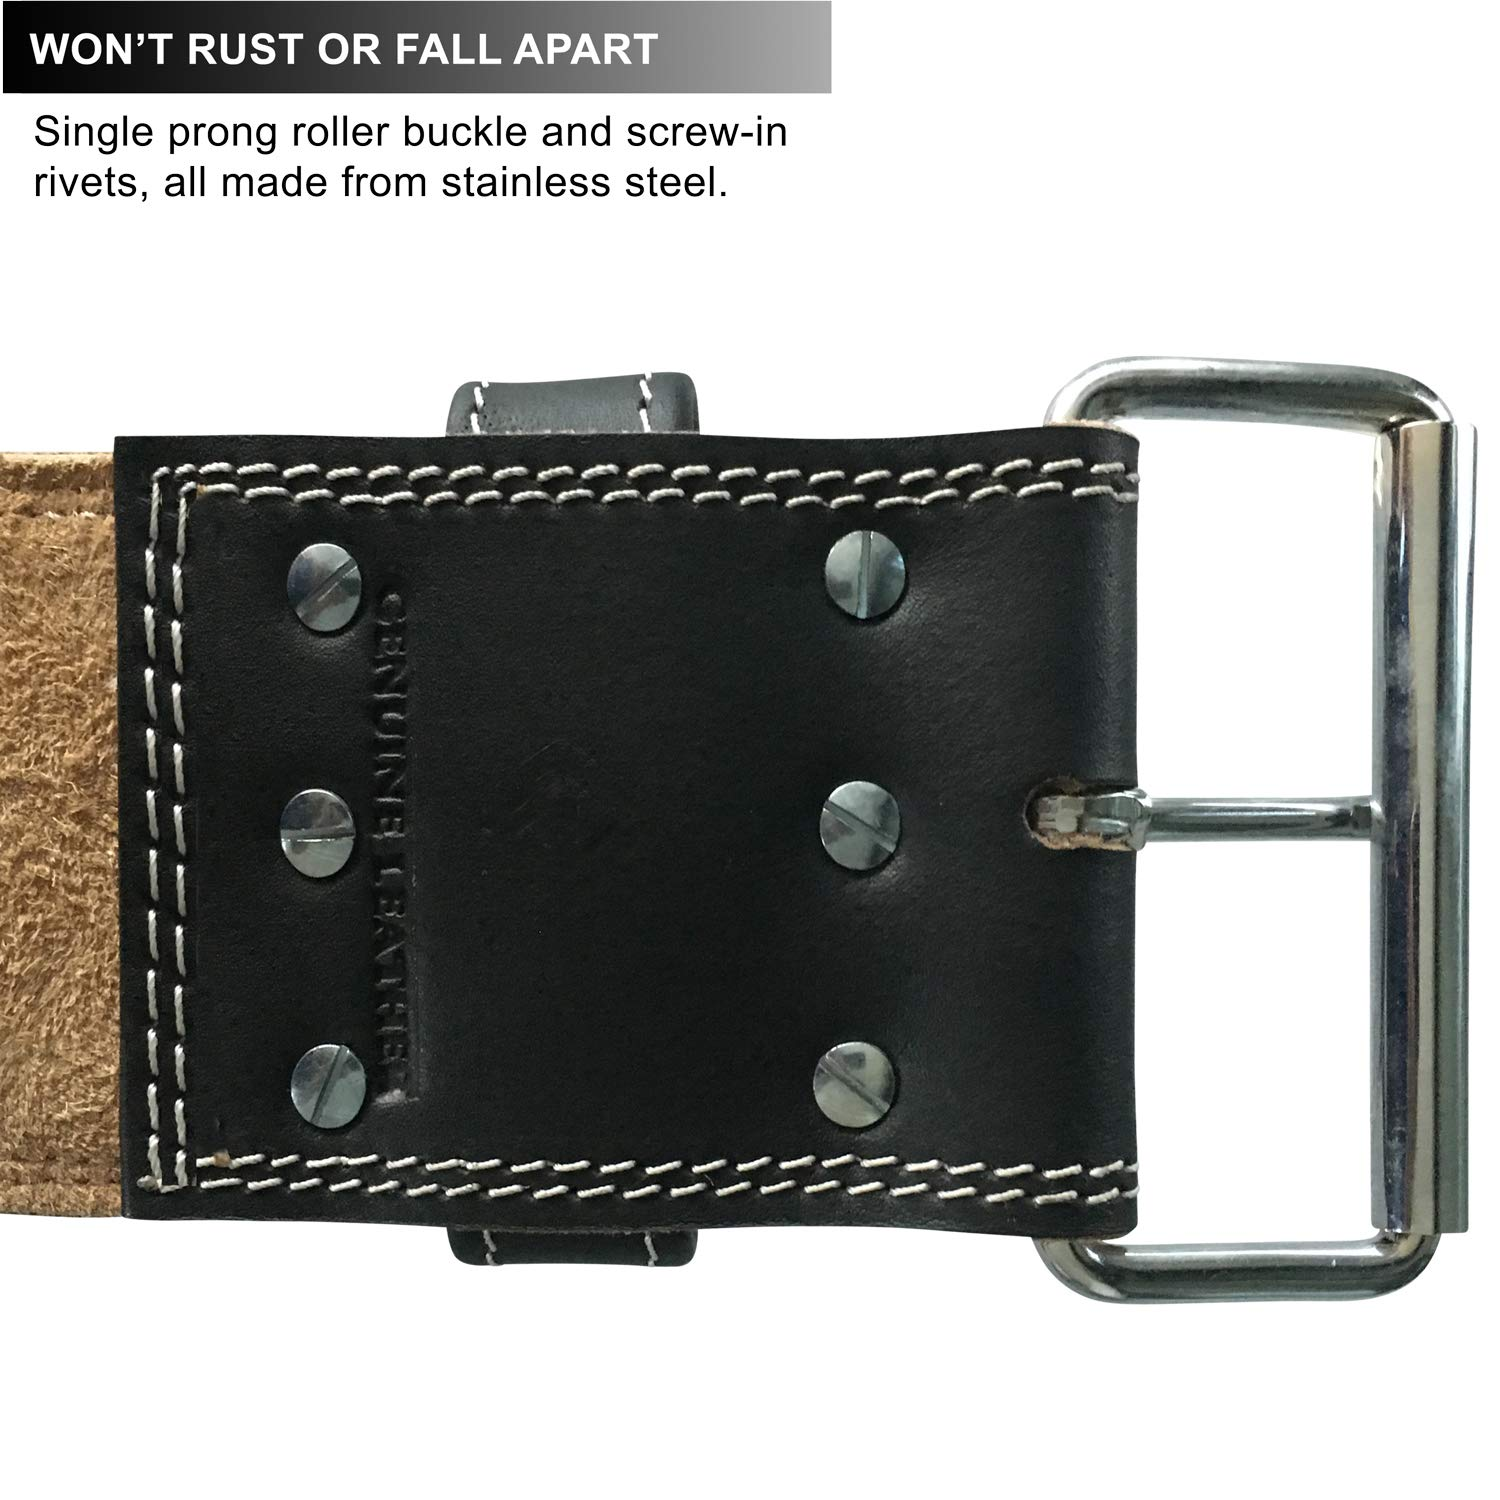 Steel Sweat Weight Lifting Belt - 4 Inches Wide by 10mm - Single Prong Powerlifting Belt That's Heavy Duty - Genuine Cowhide Leather - Medium Texus by Steel Sweat (Image #9)